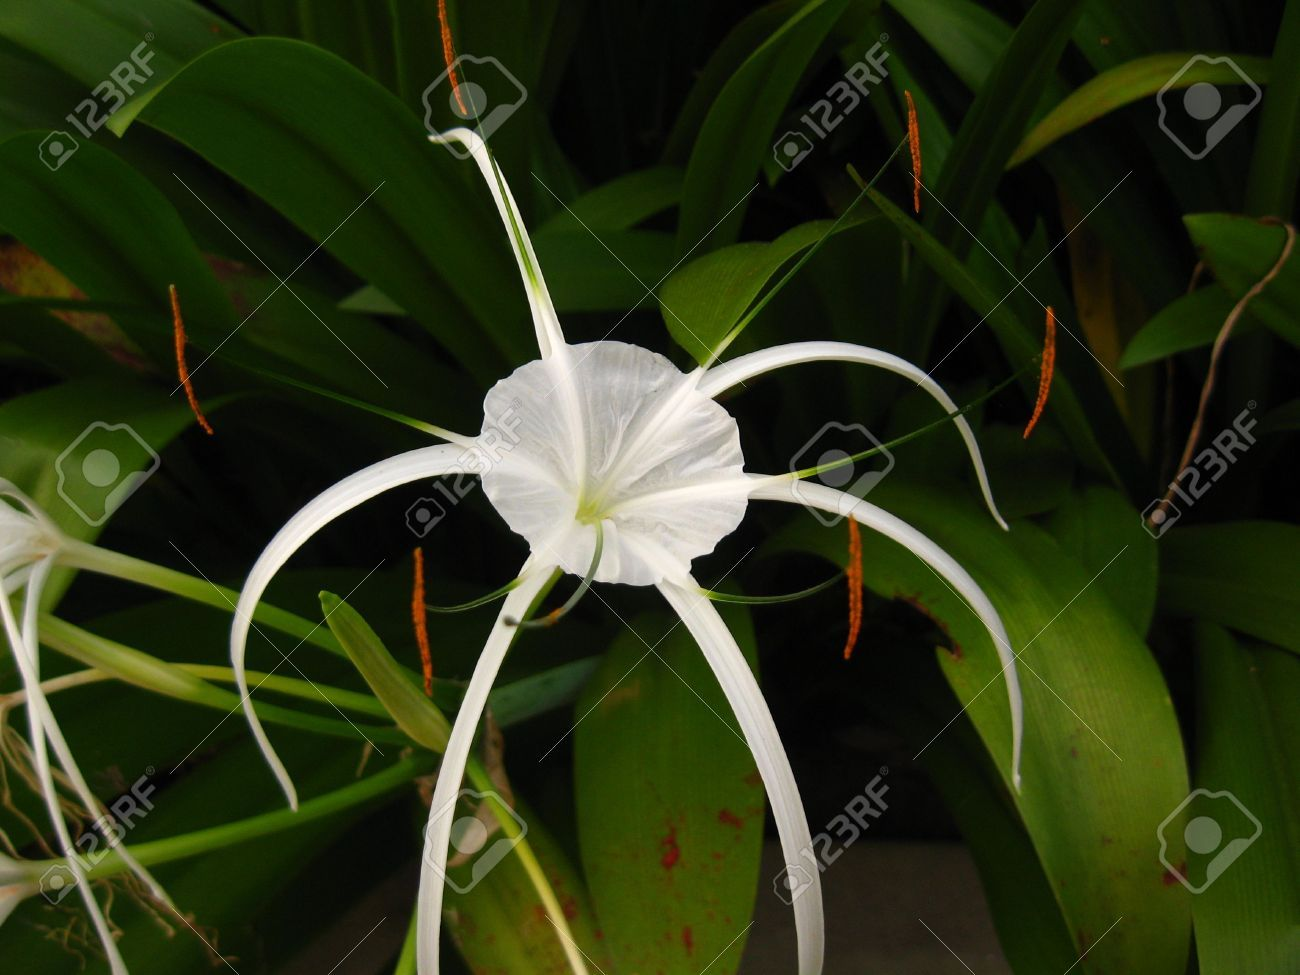 Mitzrah solitary white spider lily flower close up stock photo mitzrah solitary white spider lily flower close up izmirmasajfo Image collections